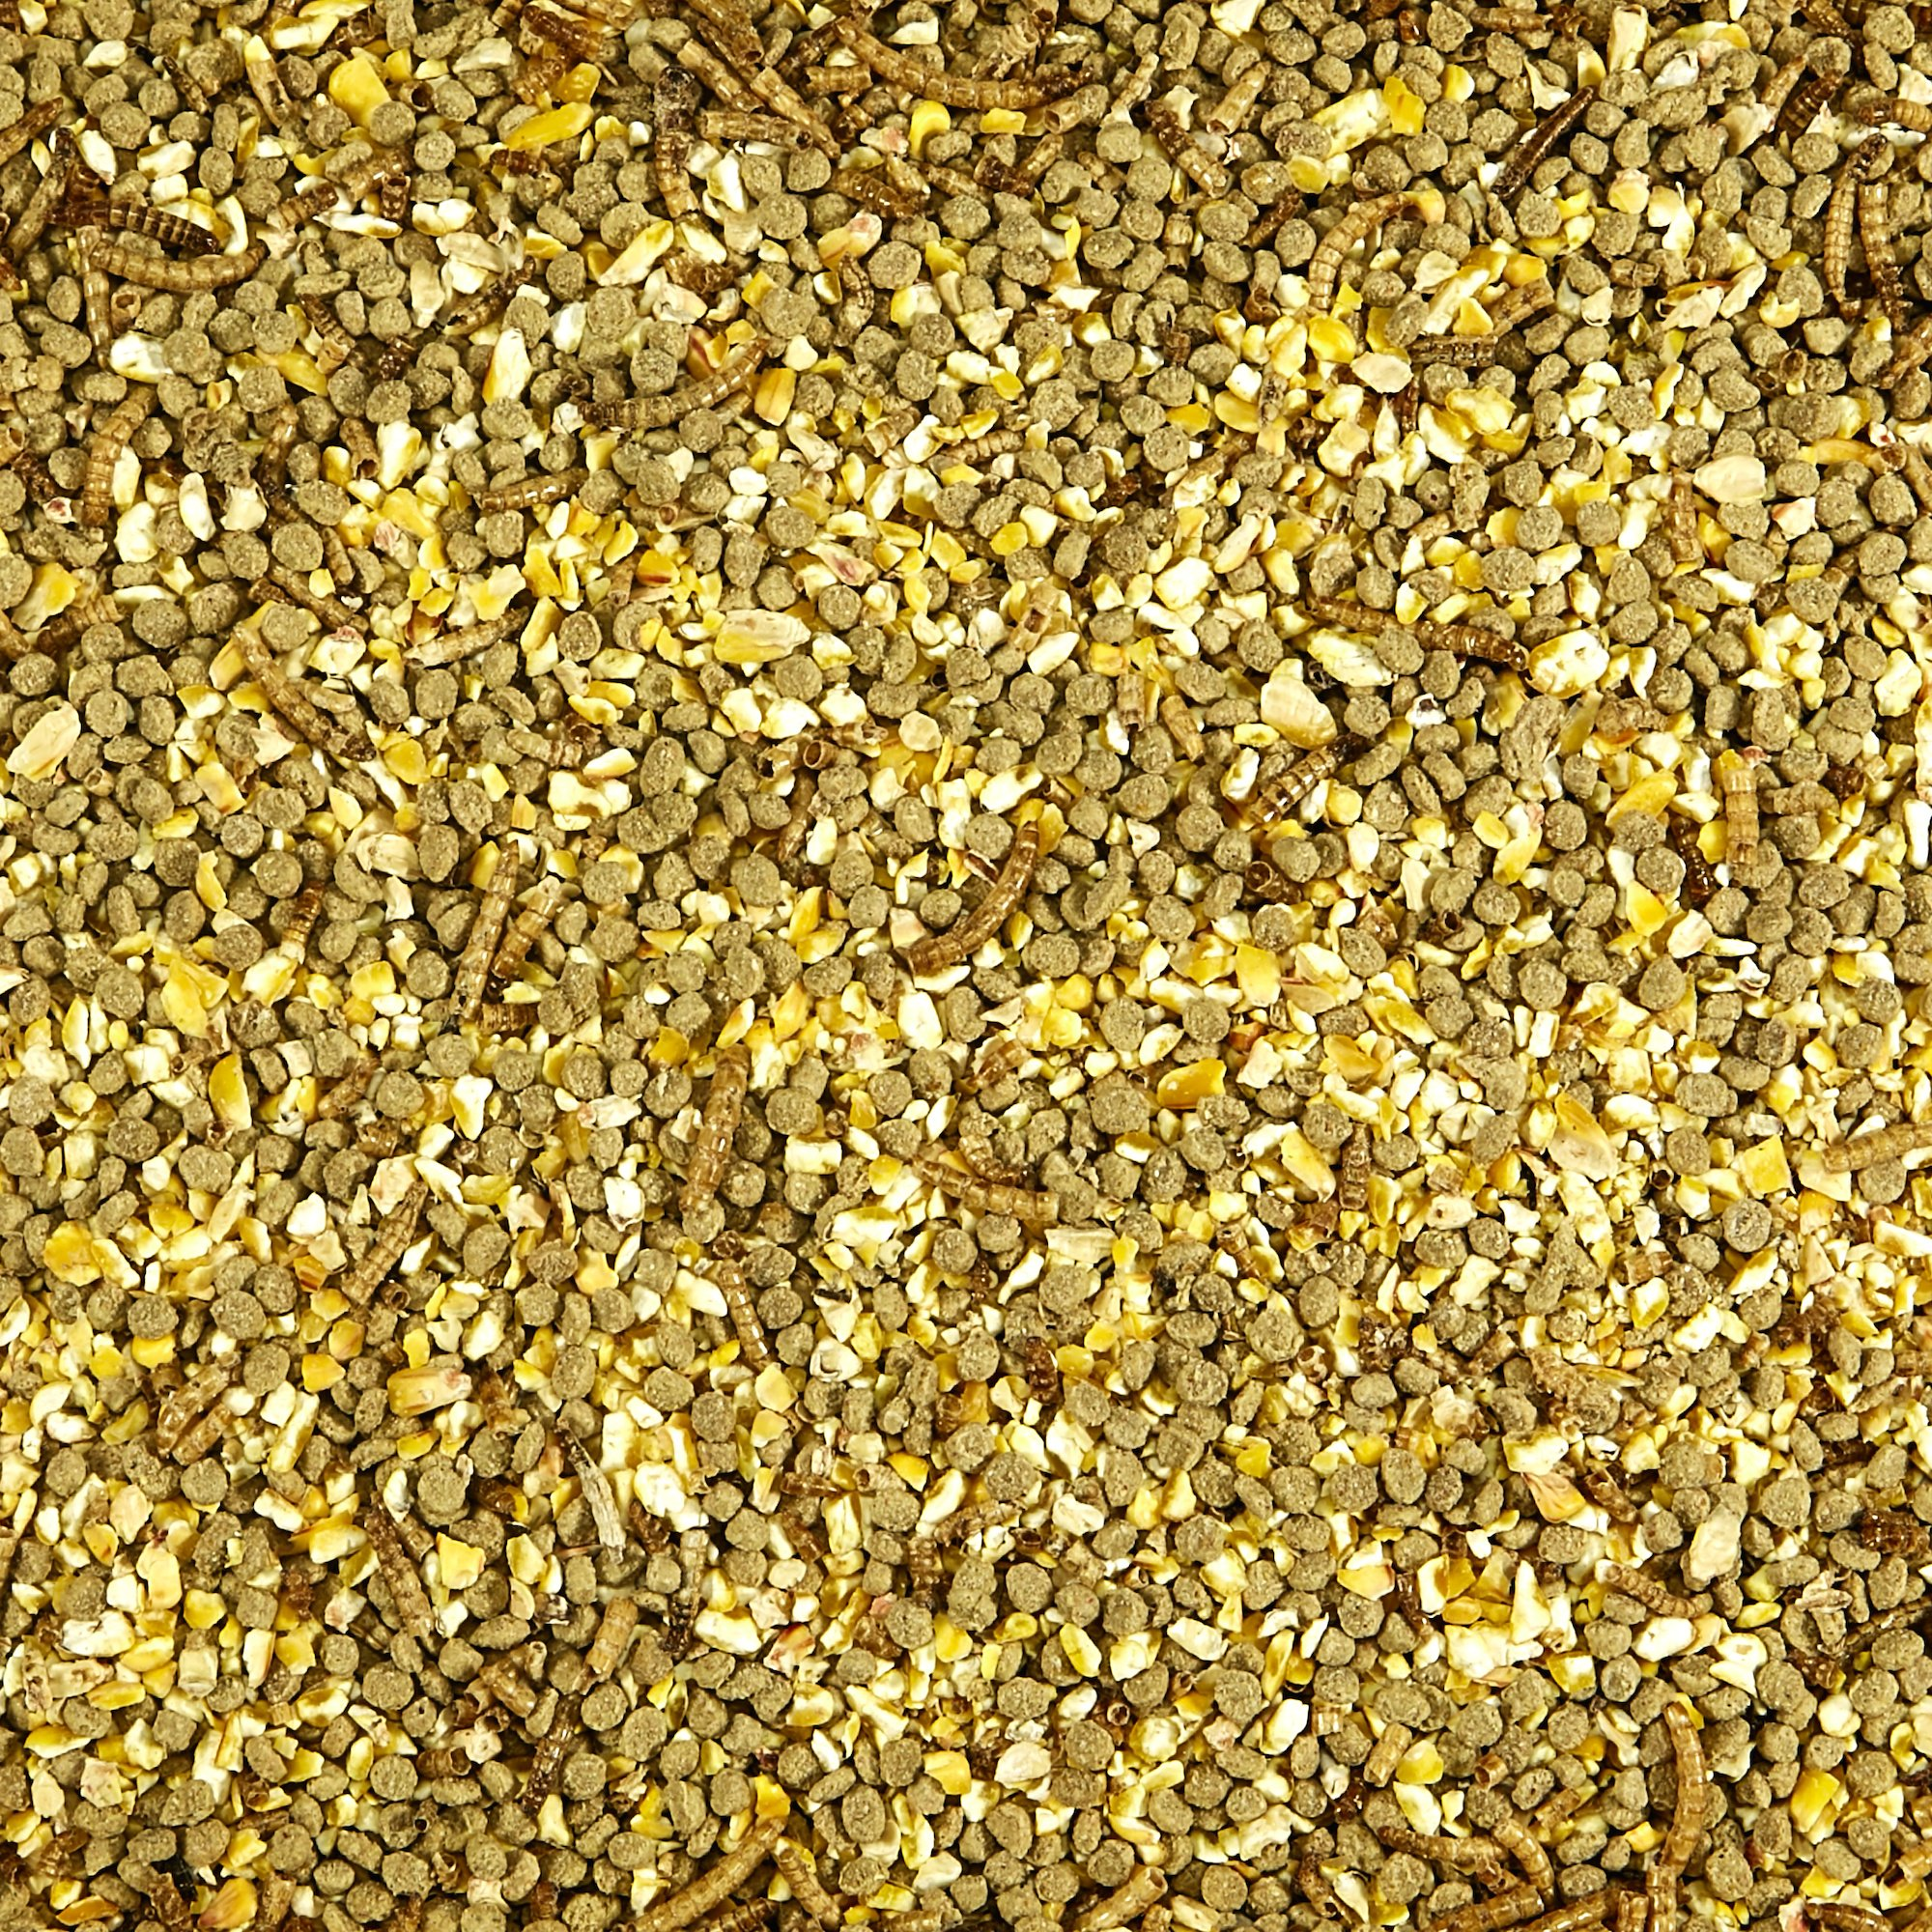 Kaytee Mealworms and Corn Treat, 3 Pound by Kaytee (Image #3)